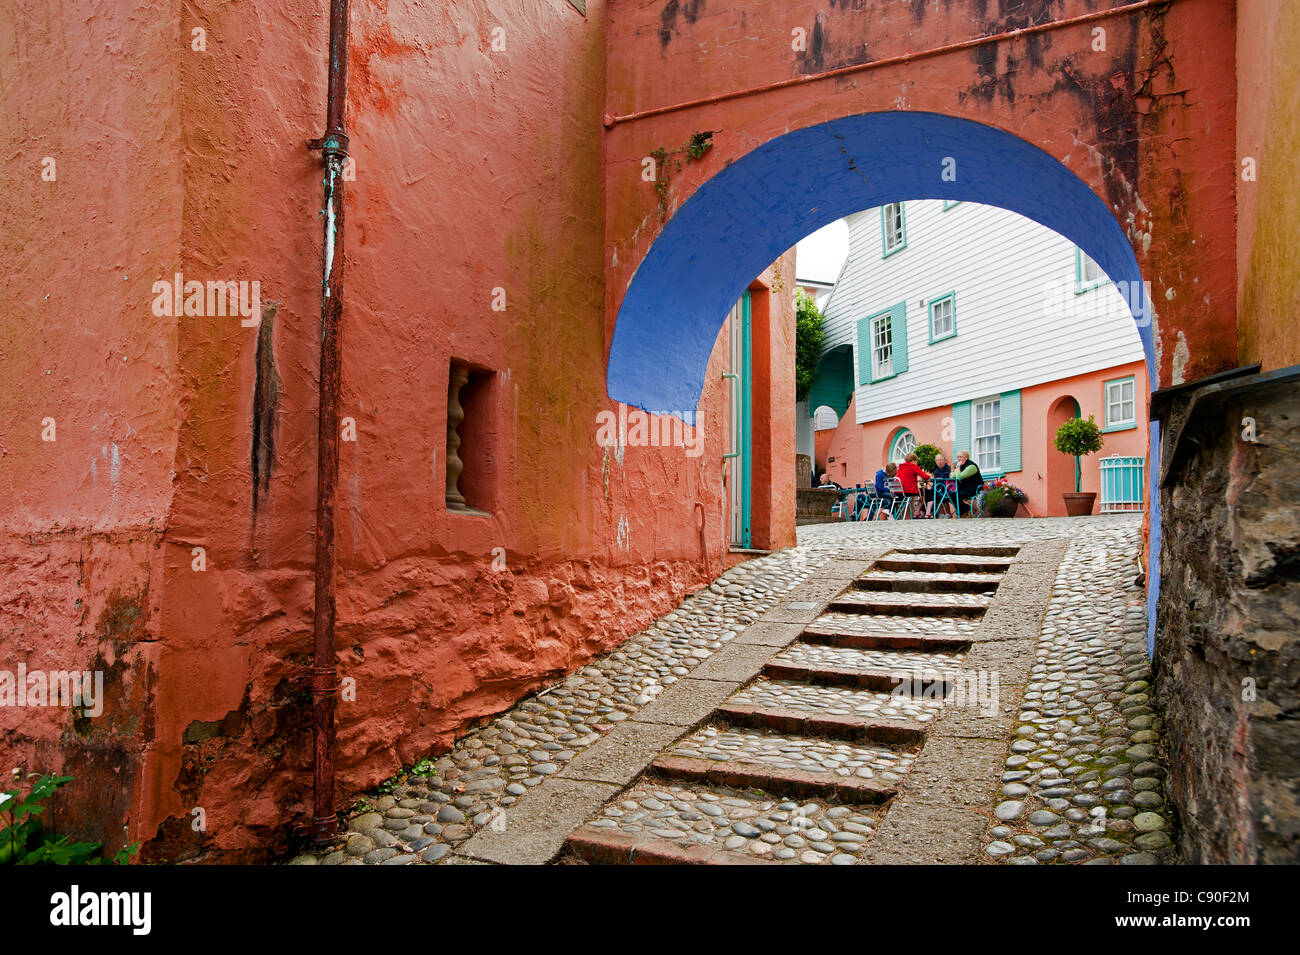 Archway in the village of Portmeirion, founded by Welsh architekt Sir Clough Williams-Ellis in 1926, Portmeirion, - Stock Image